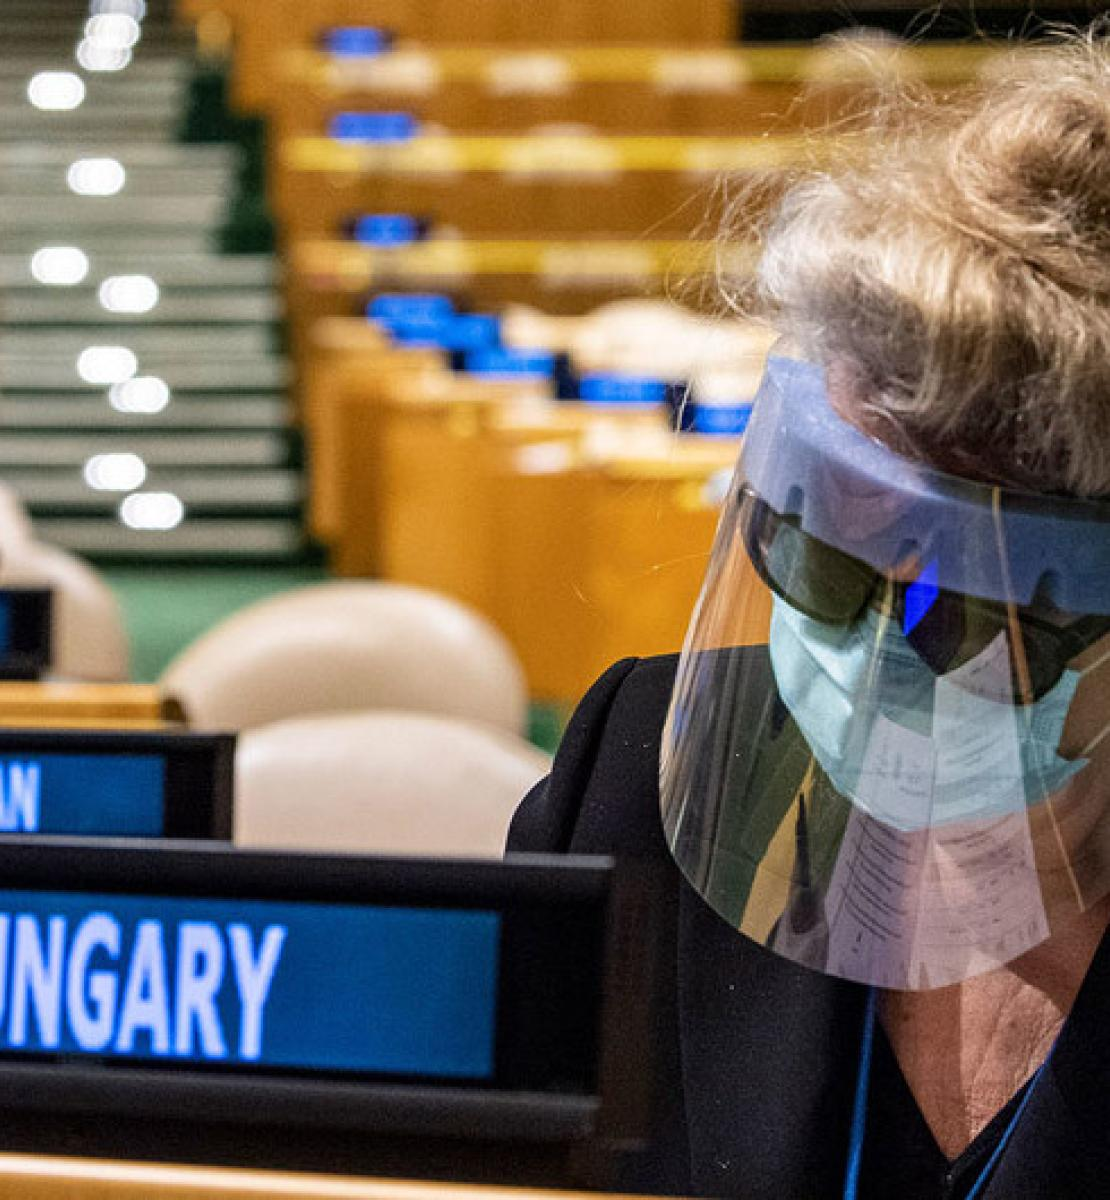 Katalin Bogyay, Permanent Representative of Hungary to the United Nations, prepares her ballots during the elections in an empty General Assembly Hall.